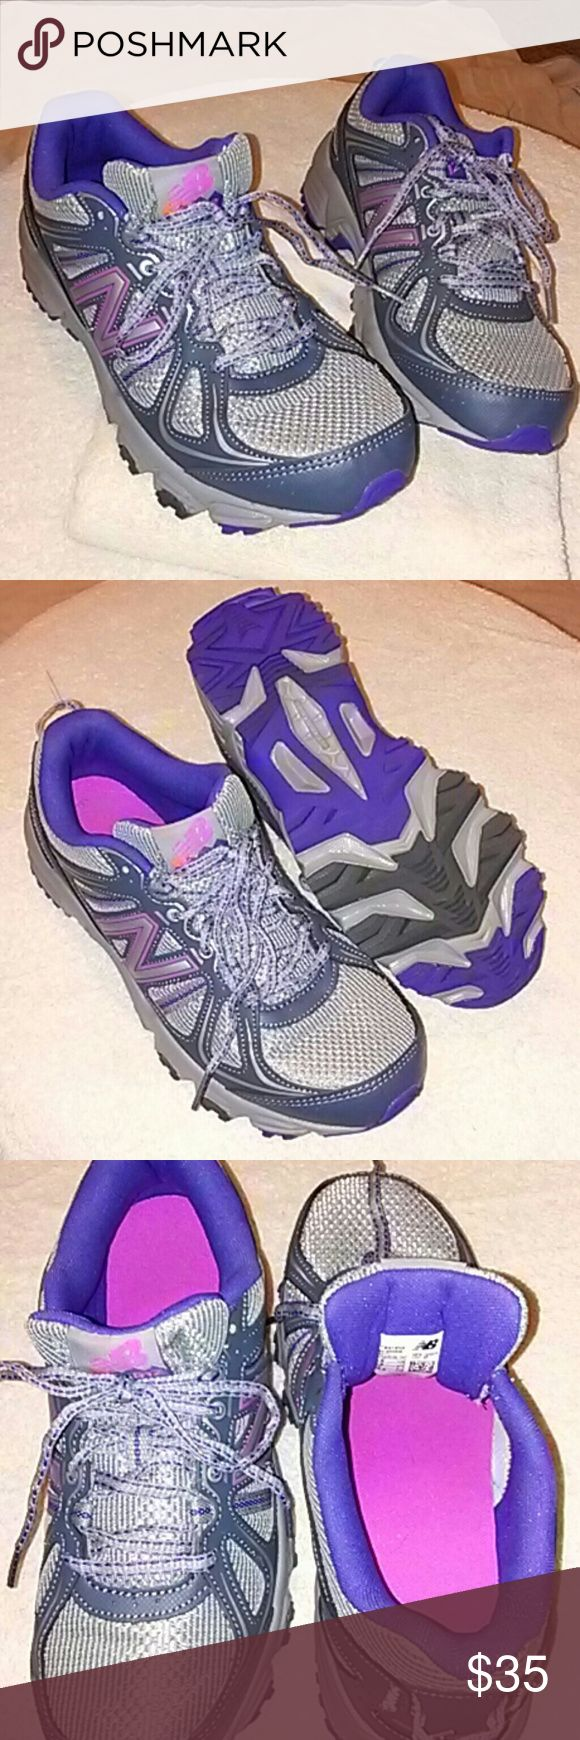 New Balance All Terrain shoe like new Excellen condition. Used one time, beautiful, very comfortable, like new. Any reasonable offer will be considered. New Balance Shoes Athletic Shoes